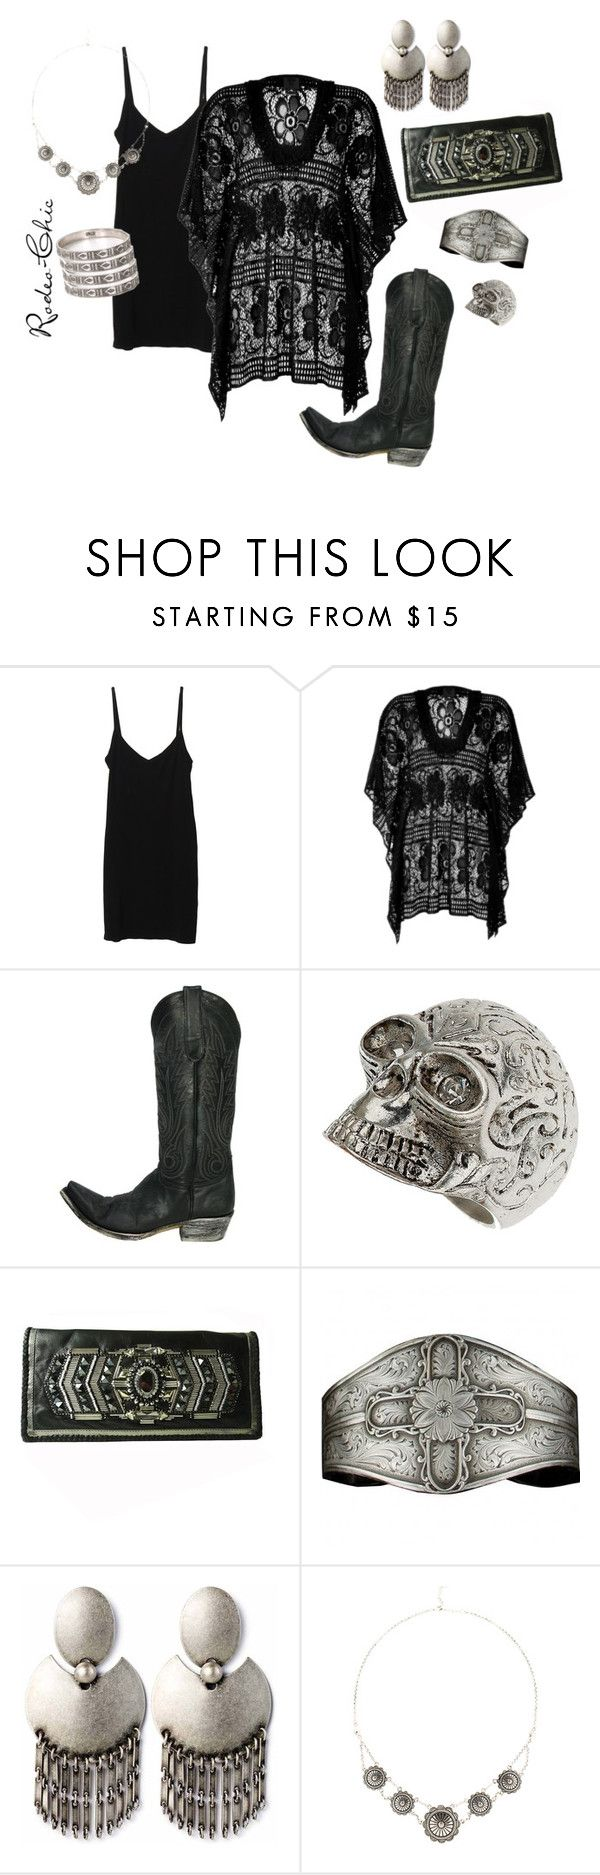 """""""Heavy Metal"""" by rodeo-chic ❤ liked on Polyvore featuring Splendid, Anna Sui, Old Gringo, Dorothy Perkins, BUBA, Jenny Bird, Fortune Favors the Brave, LowLuv, crochet and cowboy boots"""